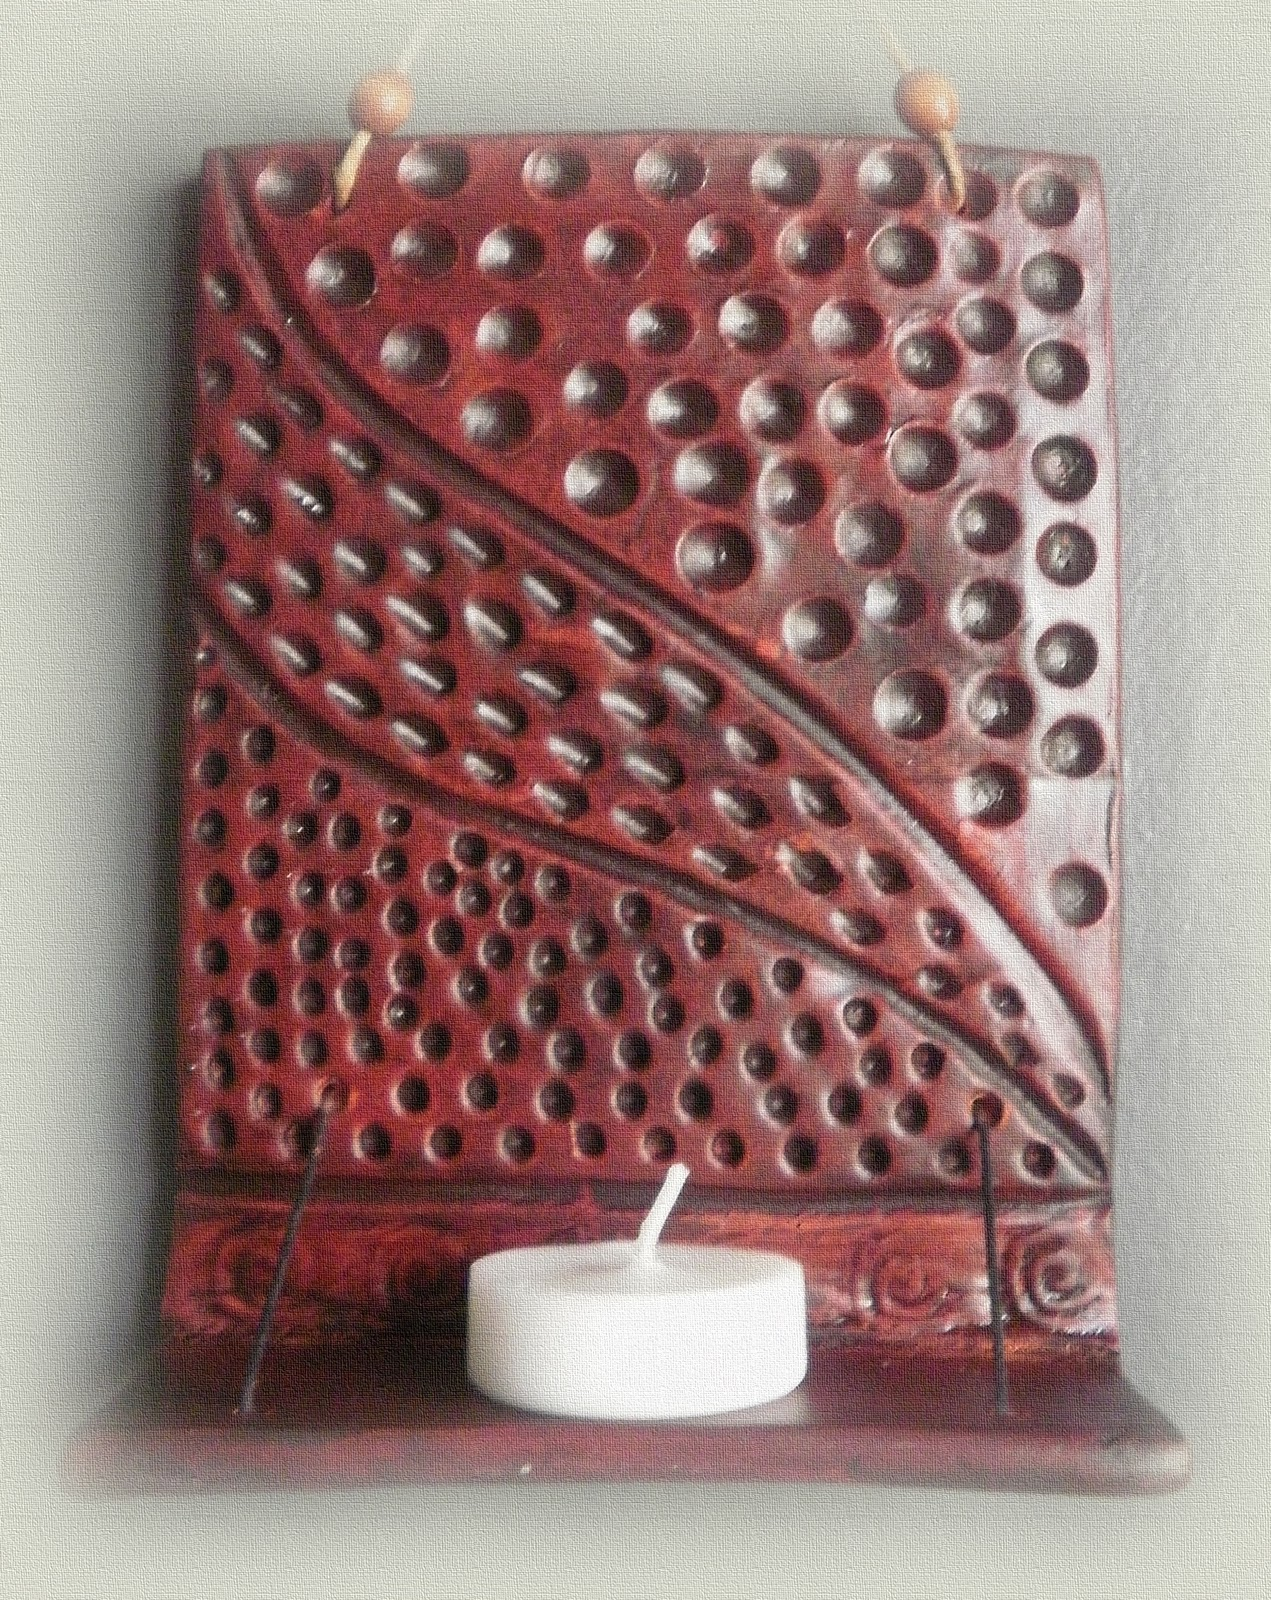 misirloumisirlou: CANDLE HOLDER for wall - DIY